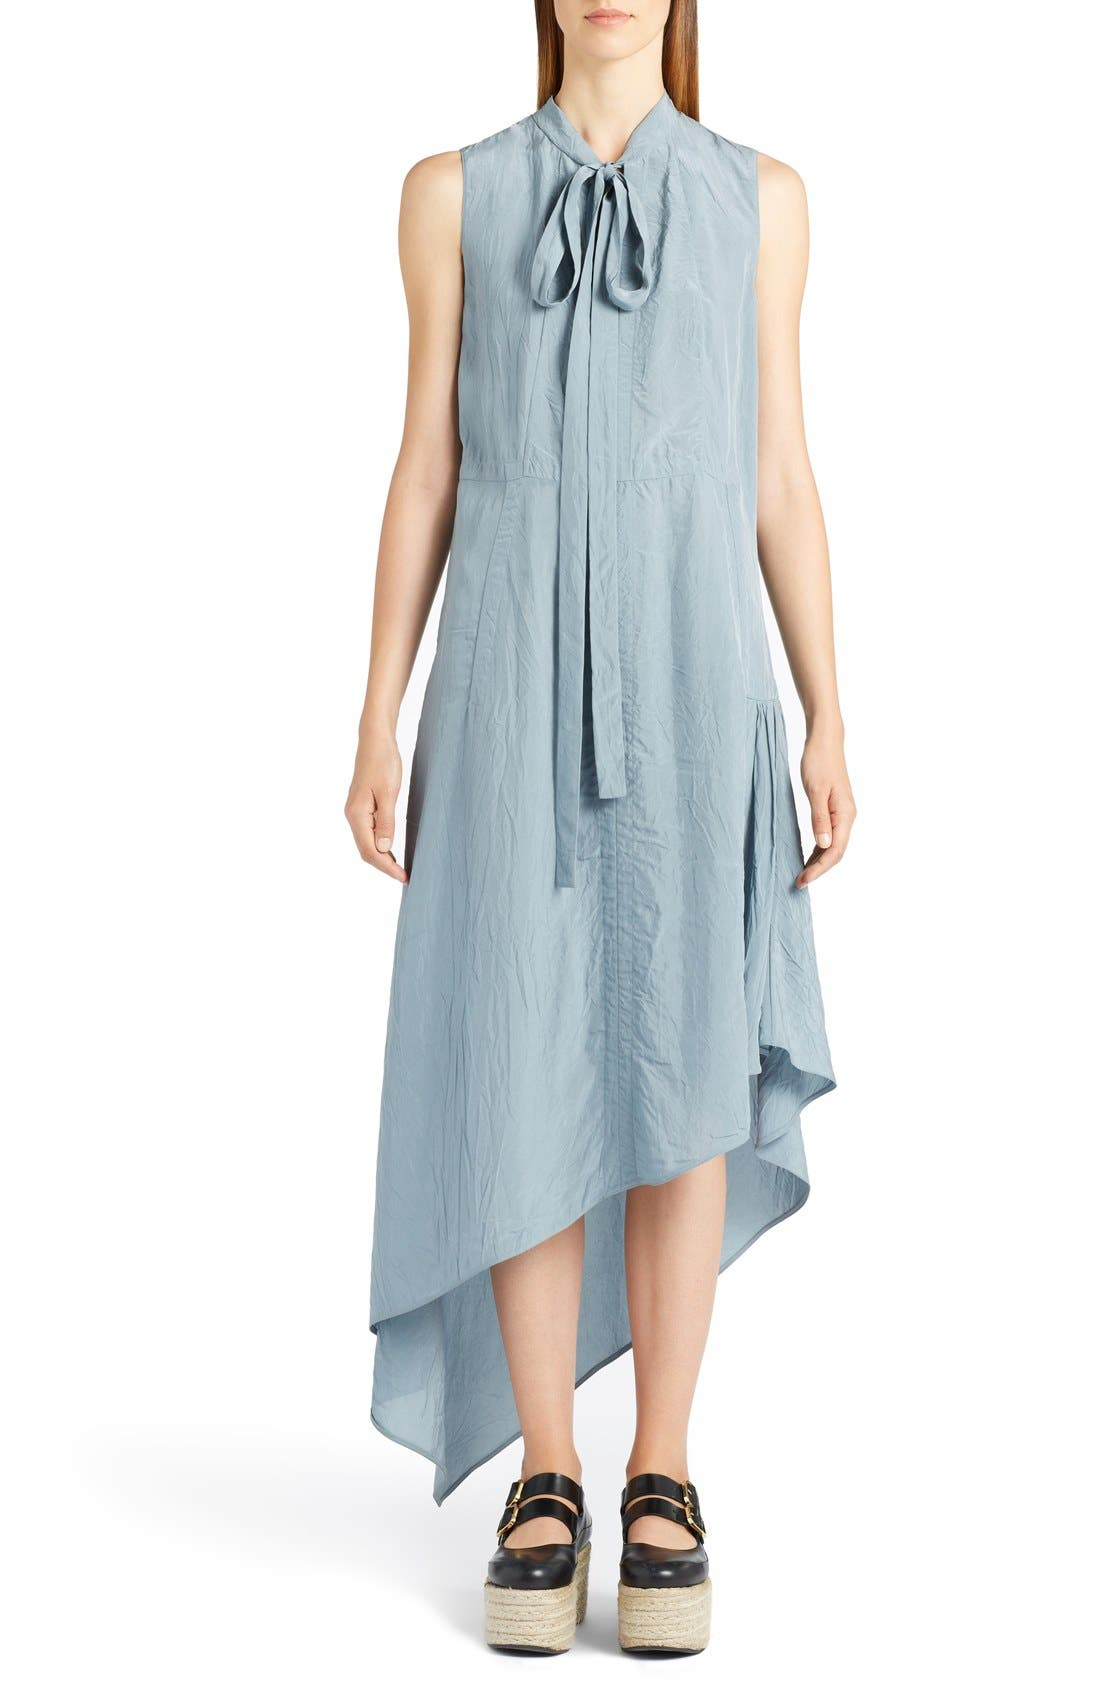 MARNI Tie Neck Asymmetrical Dress